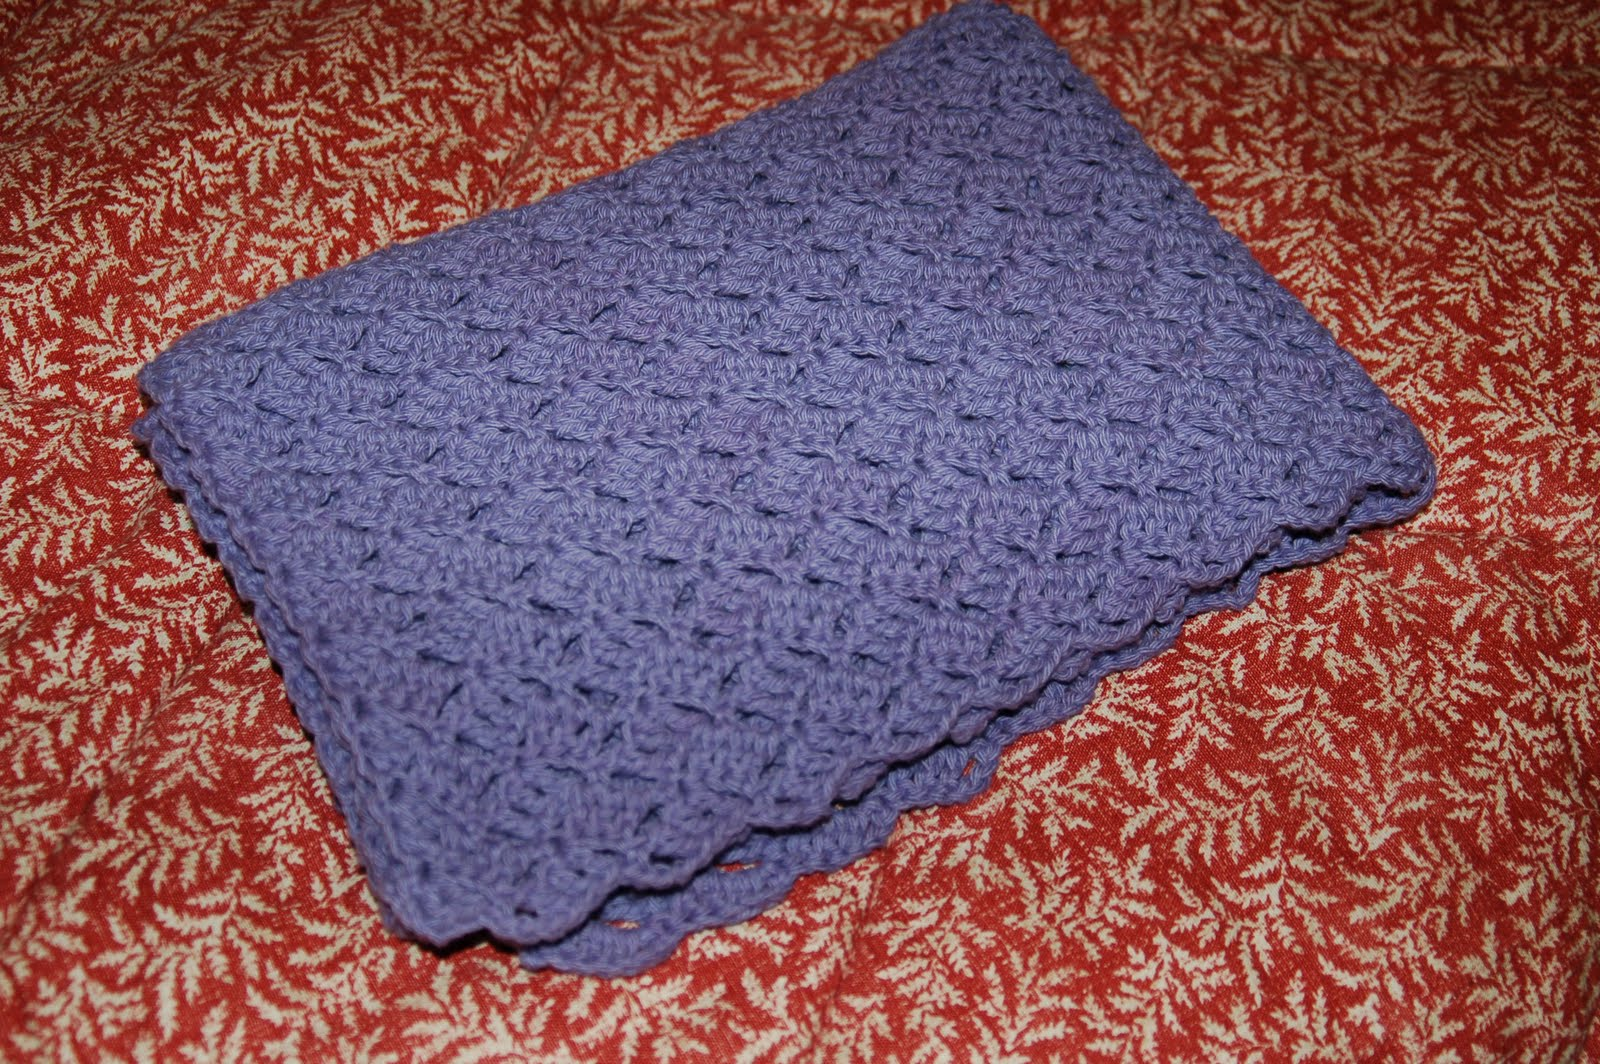 Crochet Patterns Using Bernat Blanket Yarn : Living the Craft Life: Baby Blanket out of Handicrafter yarn